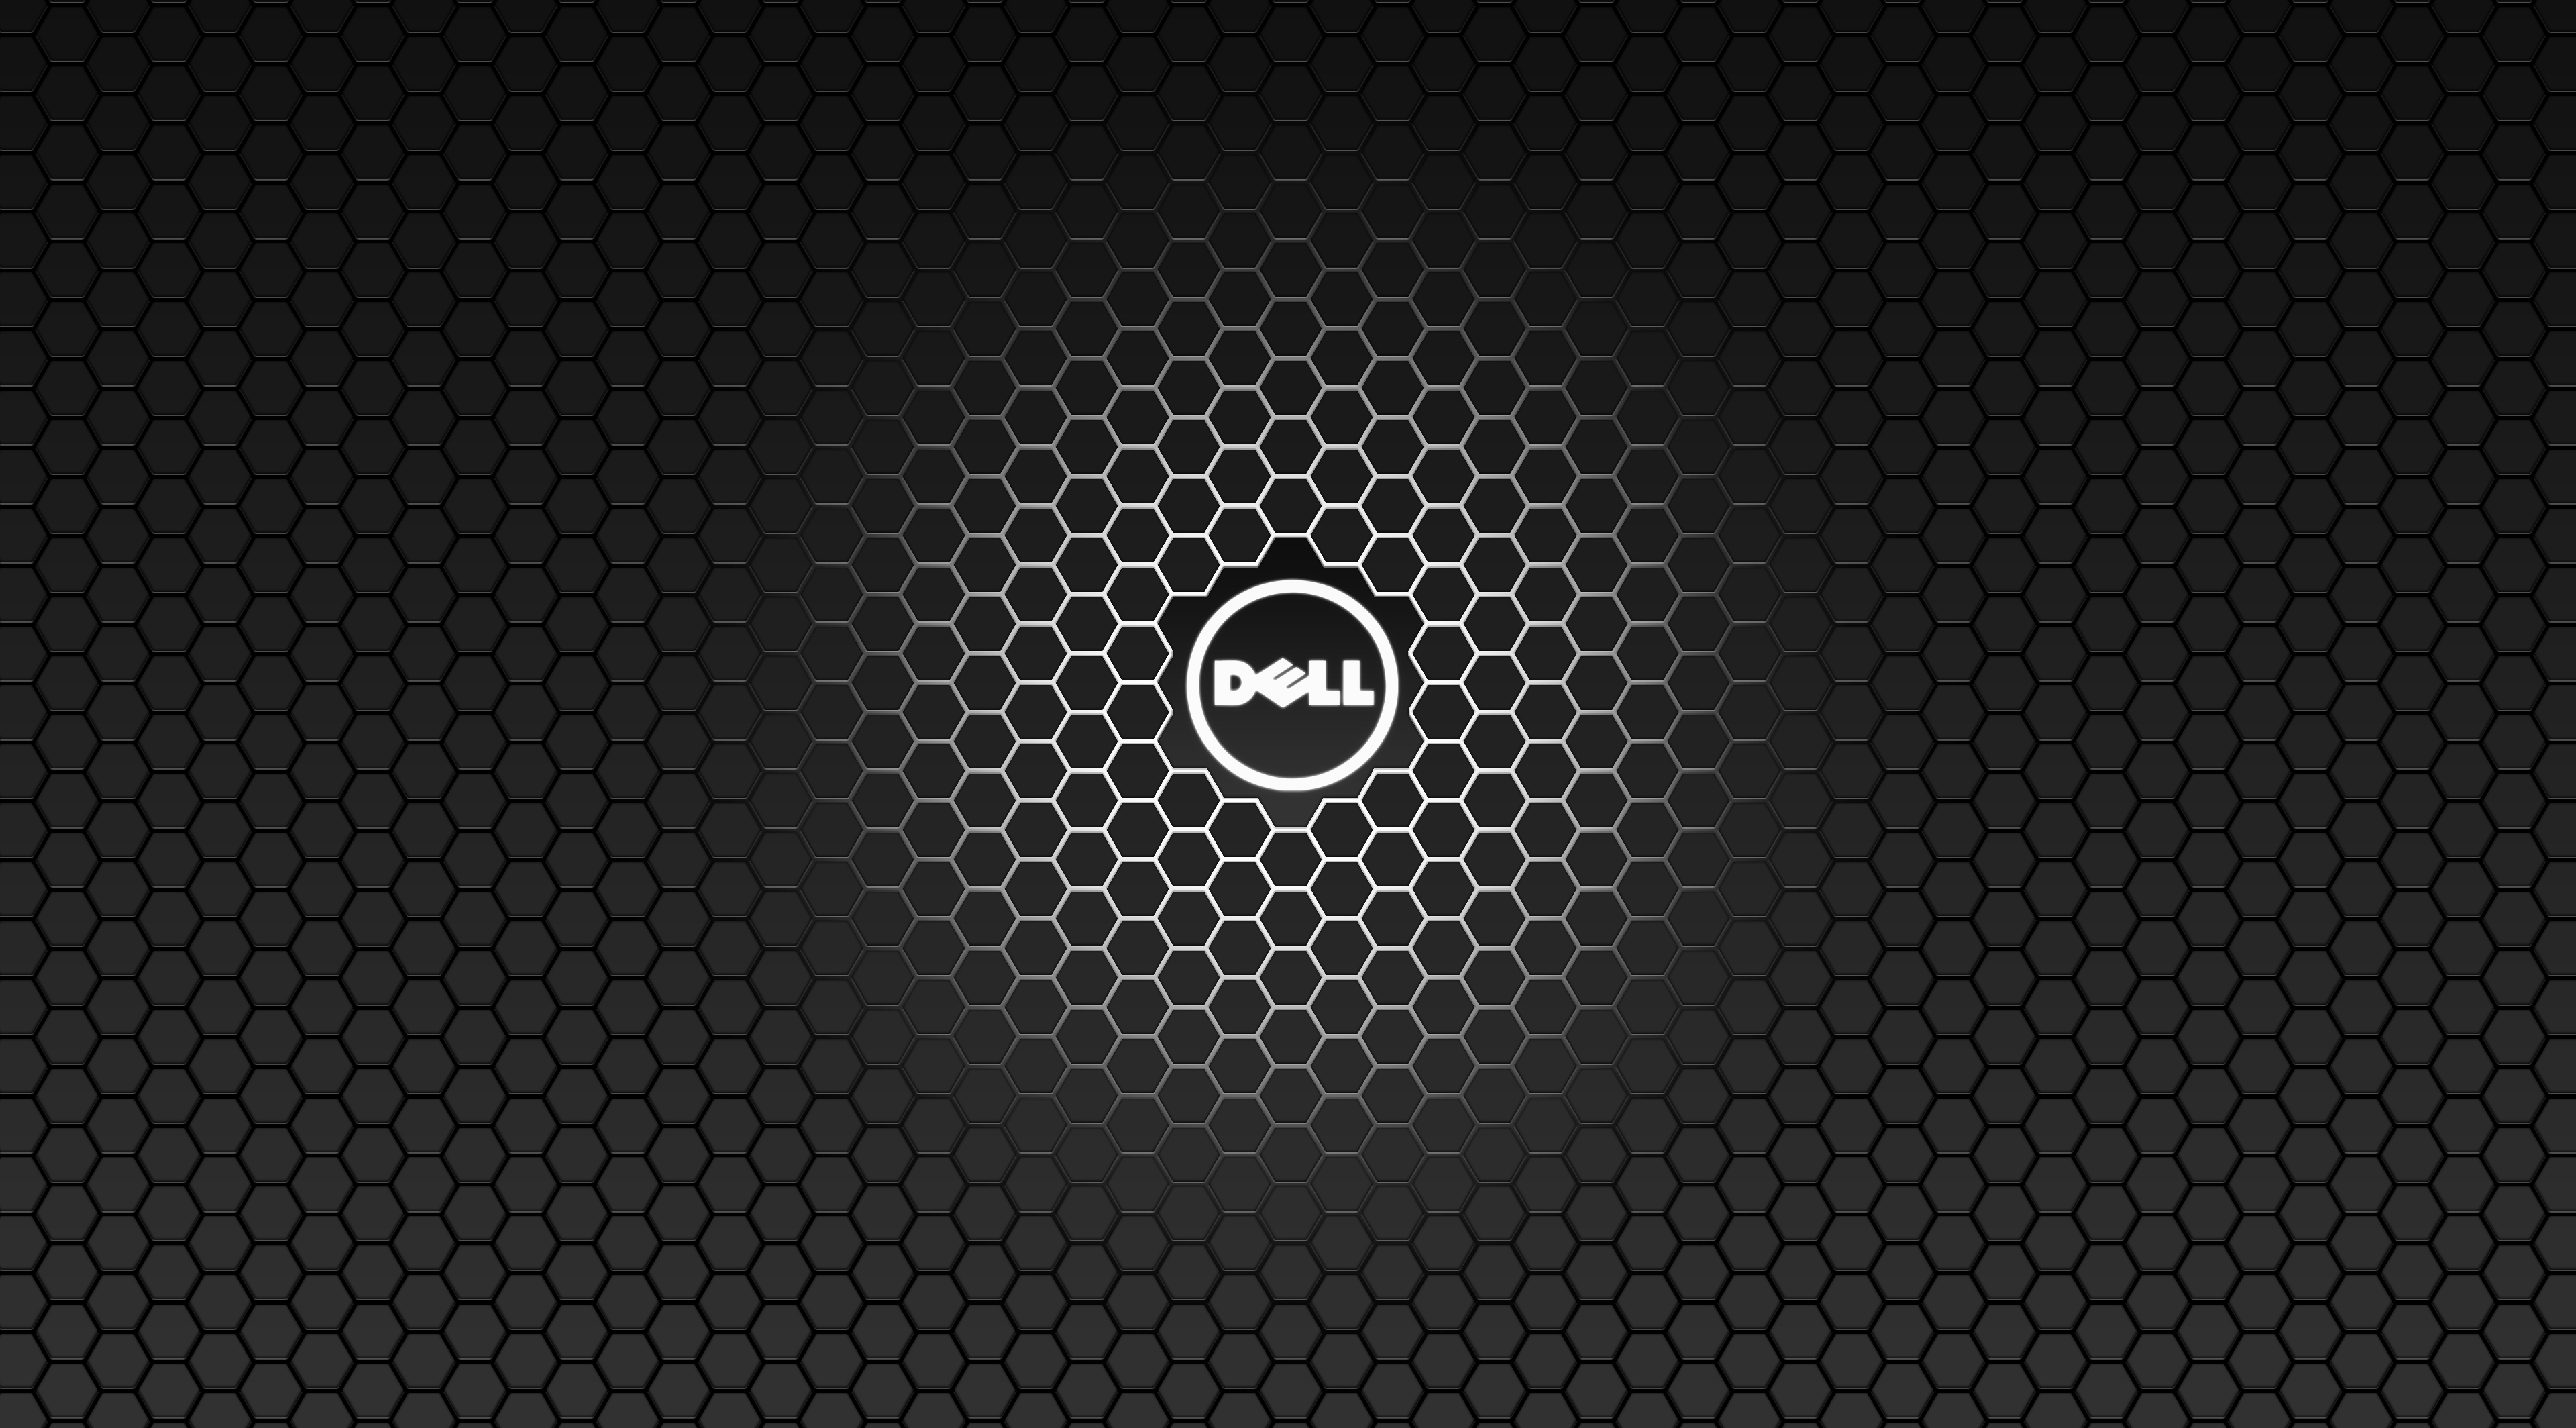 Dell 4K Wallpapers - Top Free Dell 4K Backgrounds - WallpaperAccess